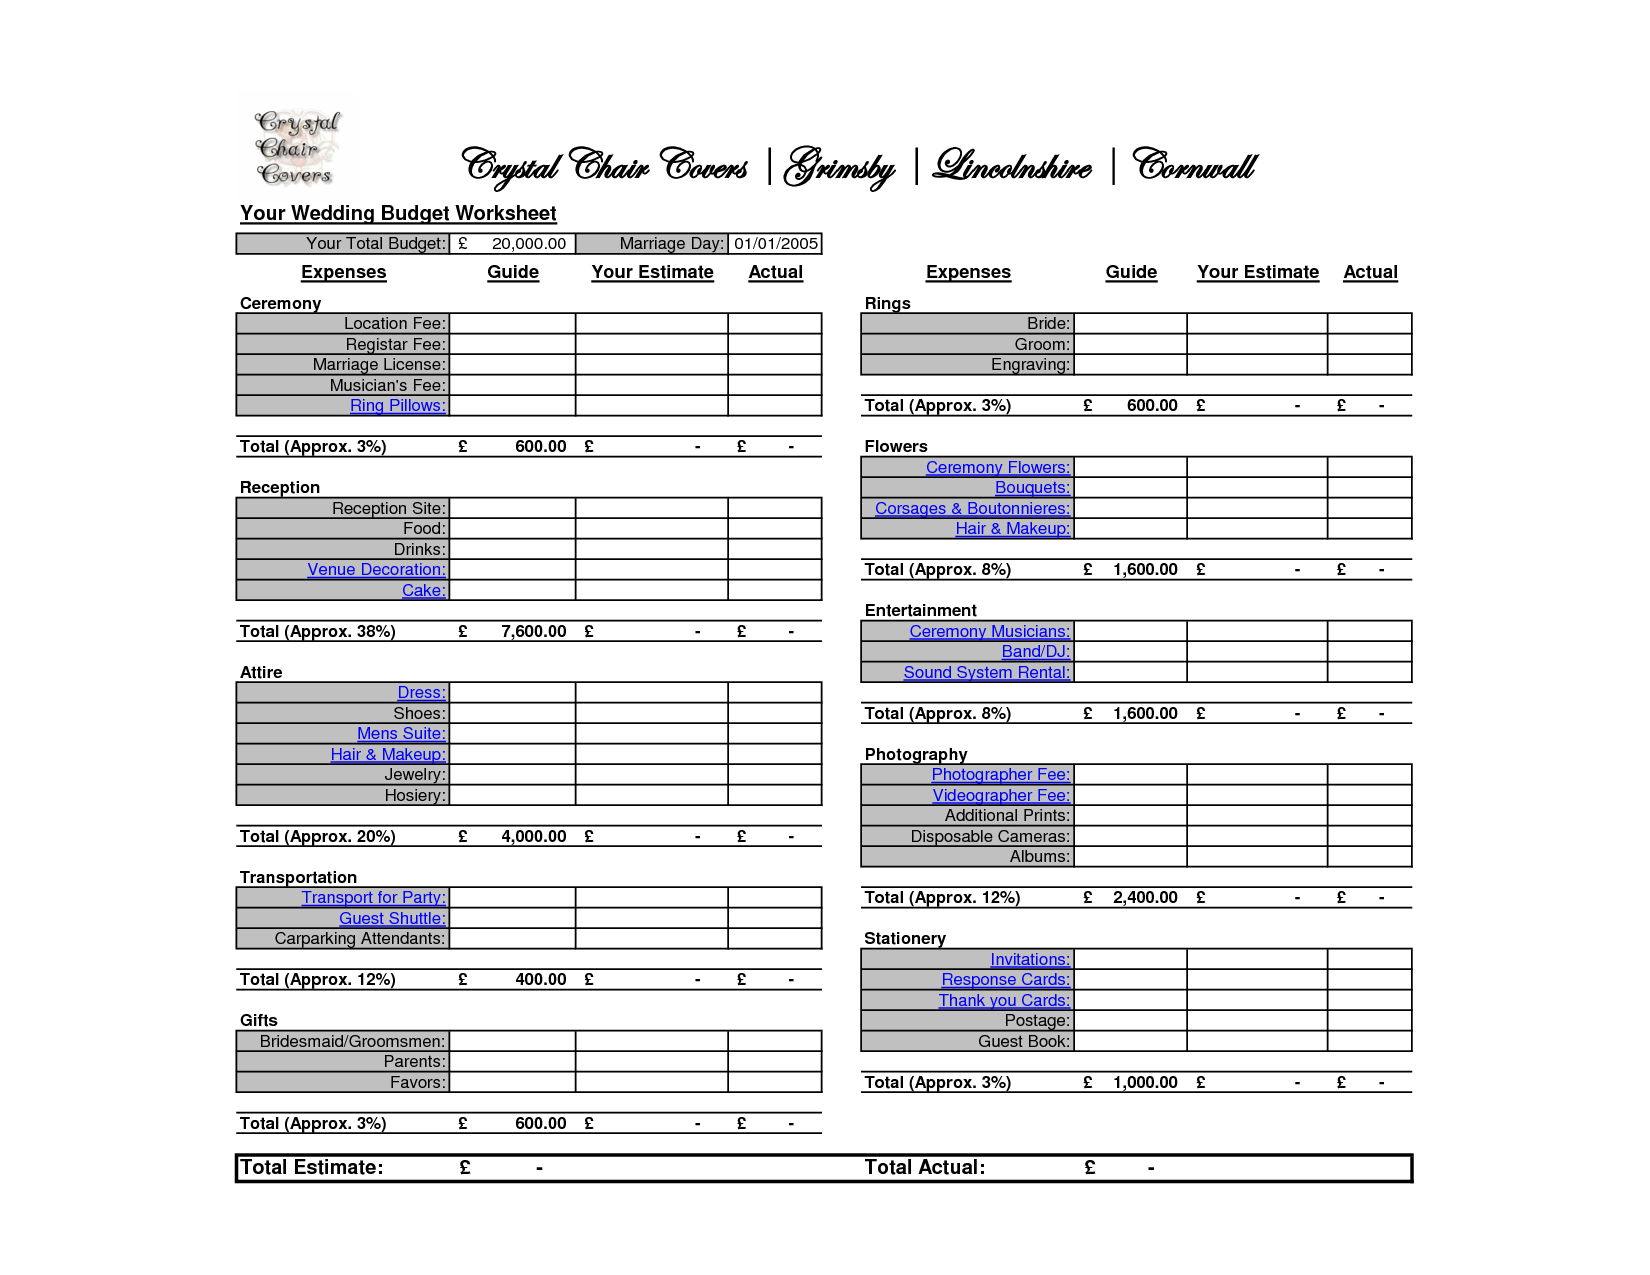 wedding budget spreadsheet google – Wedding Budget Worksheet Excel